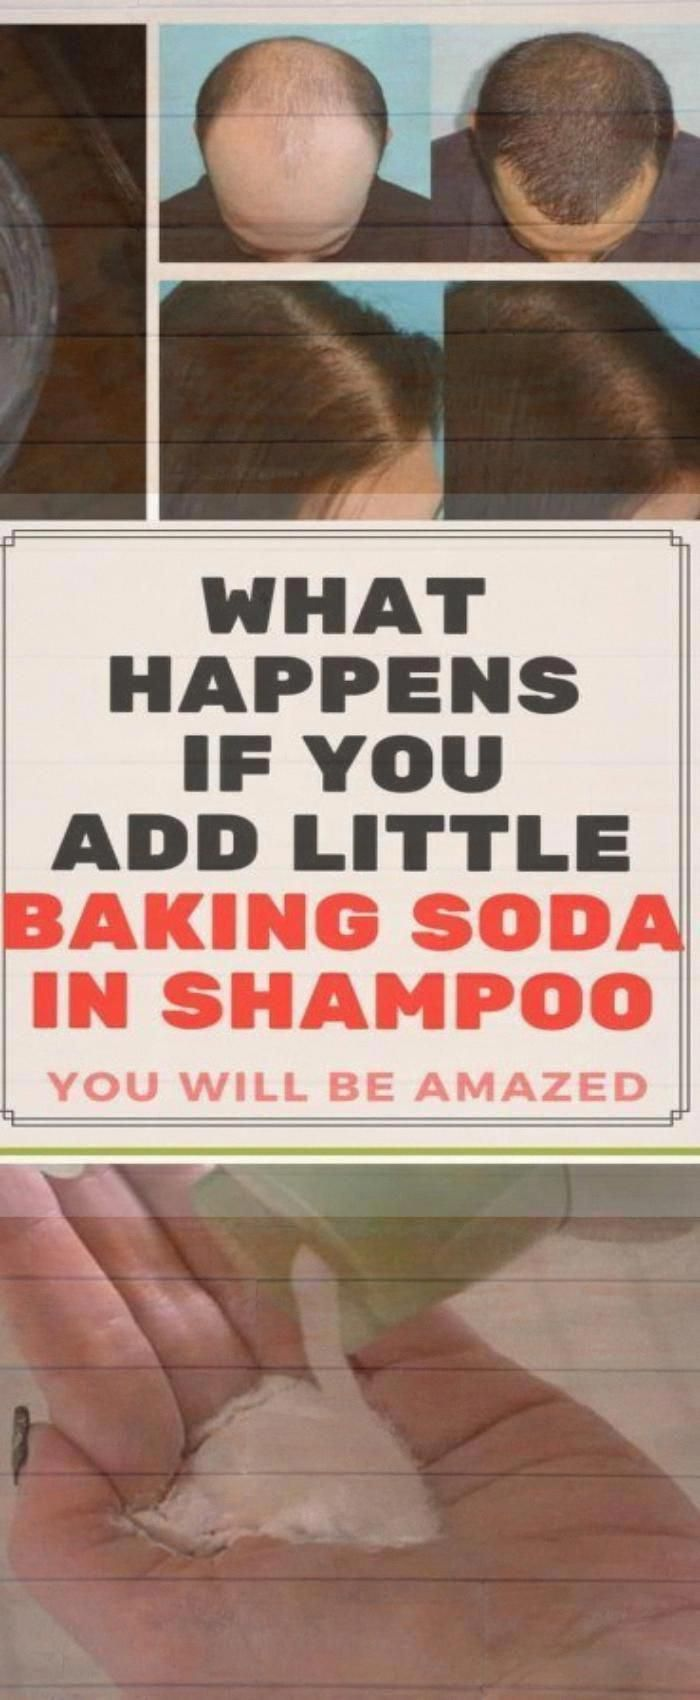 What Happens If You Add Little Baking Soda In Shampoo, You Will Be Amazed #health #fitness.. #baking...